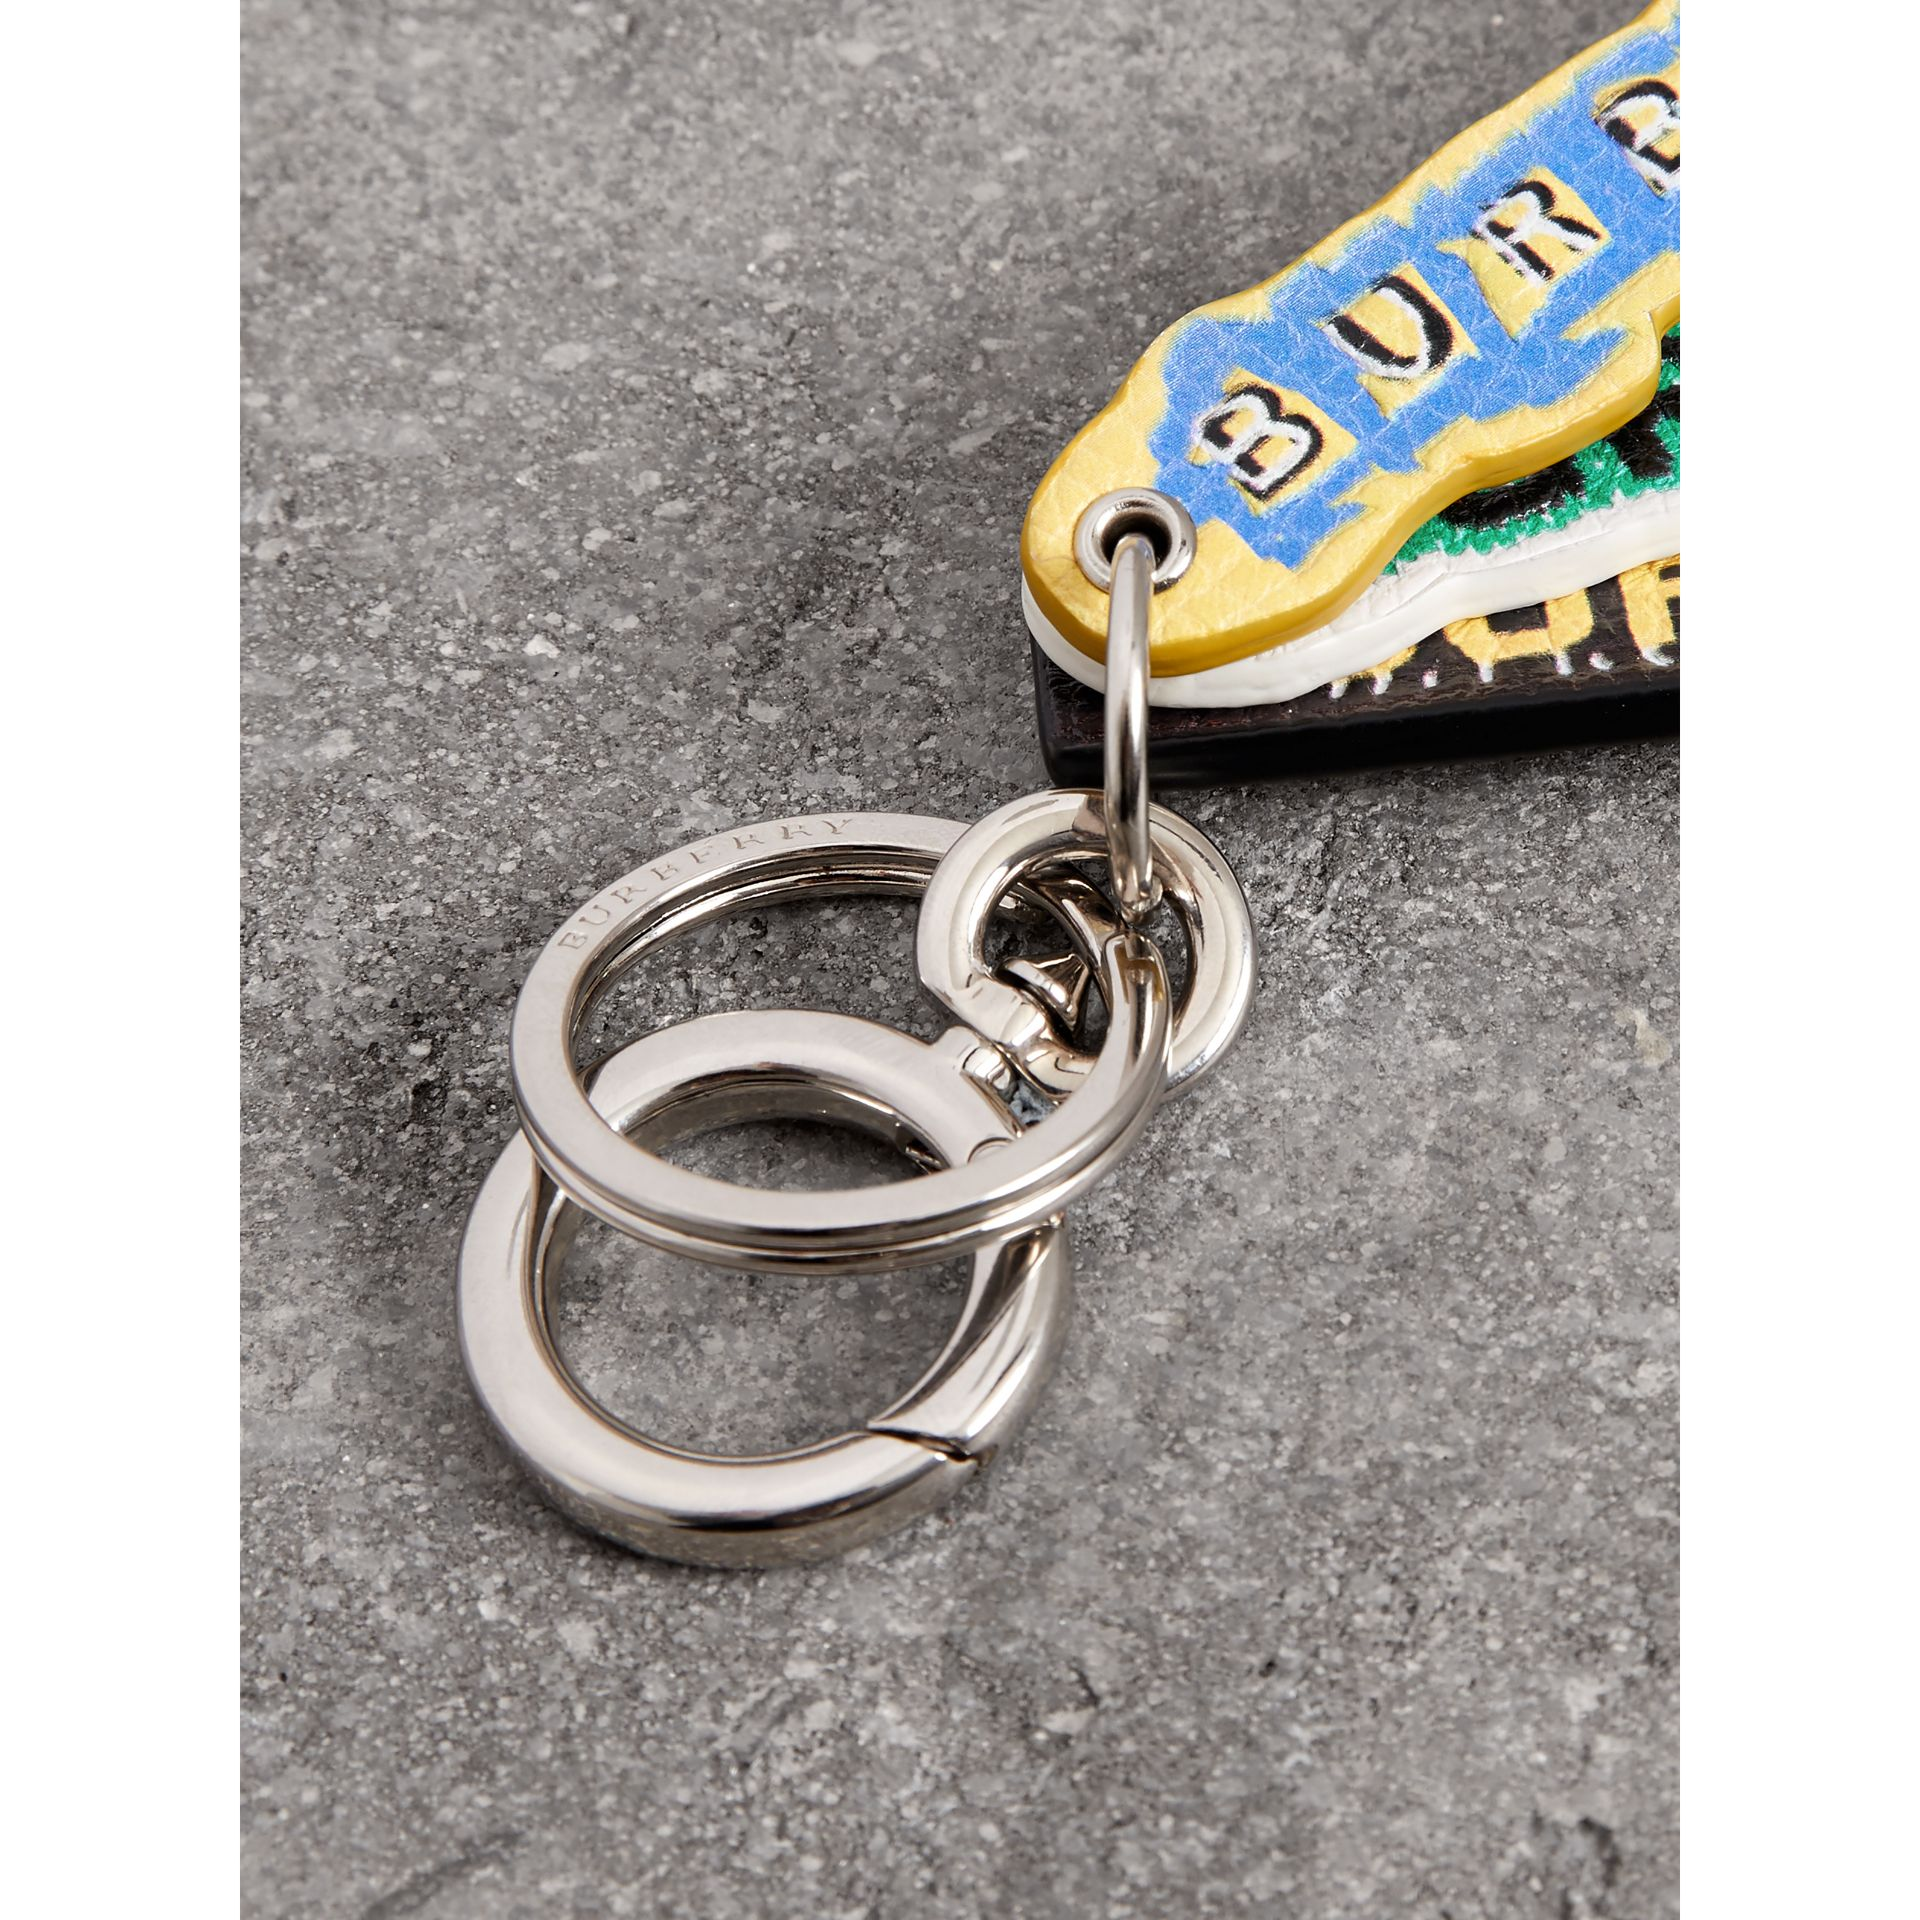 Tag Print Leather Key Chain in Multicolour | Burberry - gallery image 1